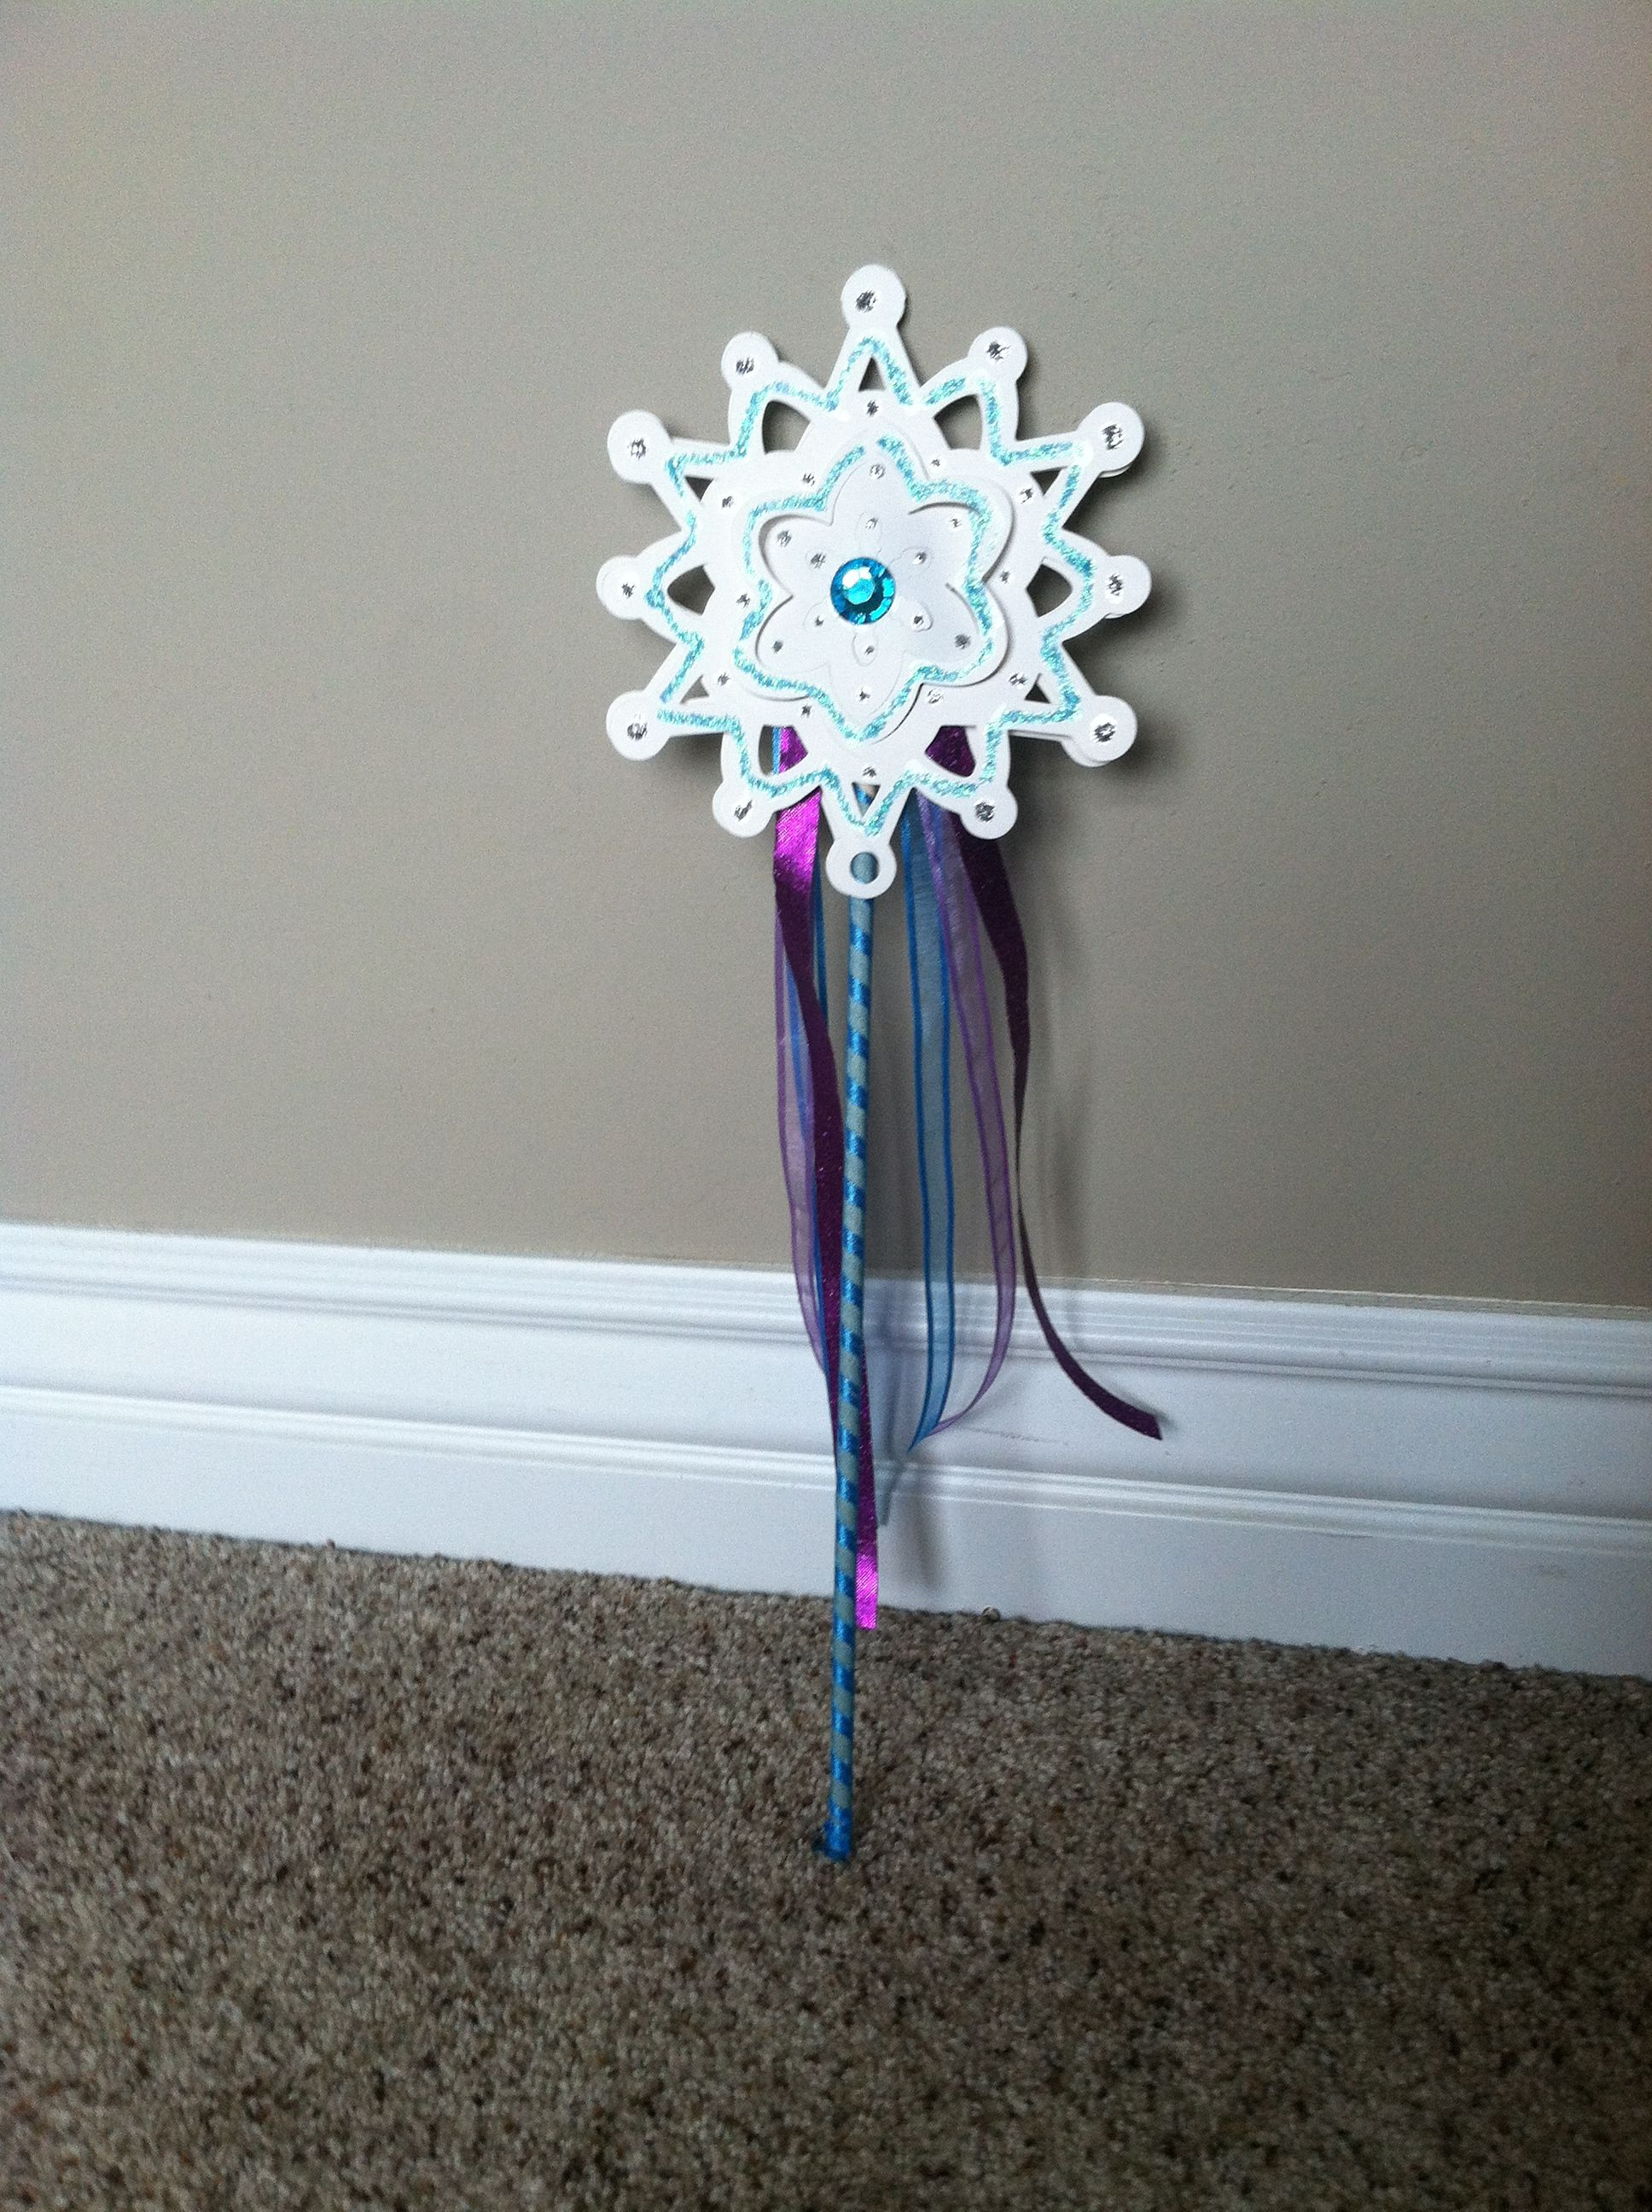 Snowflake ornaments crafts - I Used Paper Snowflake Ornaments Glitter Glue Craft Rhinestones